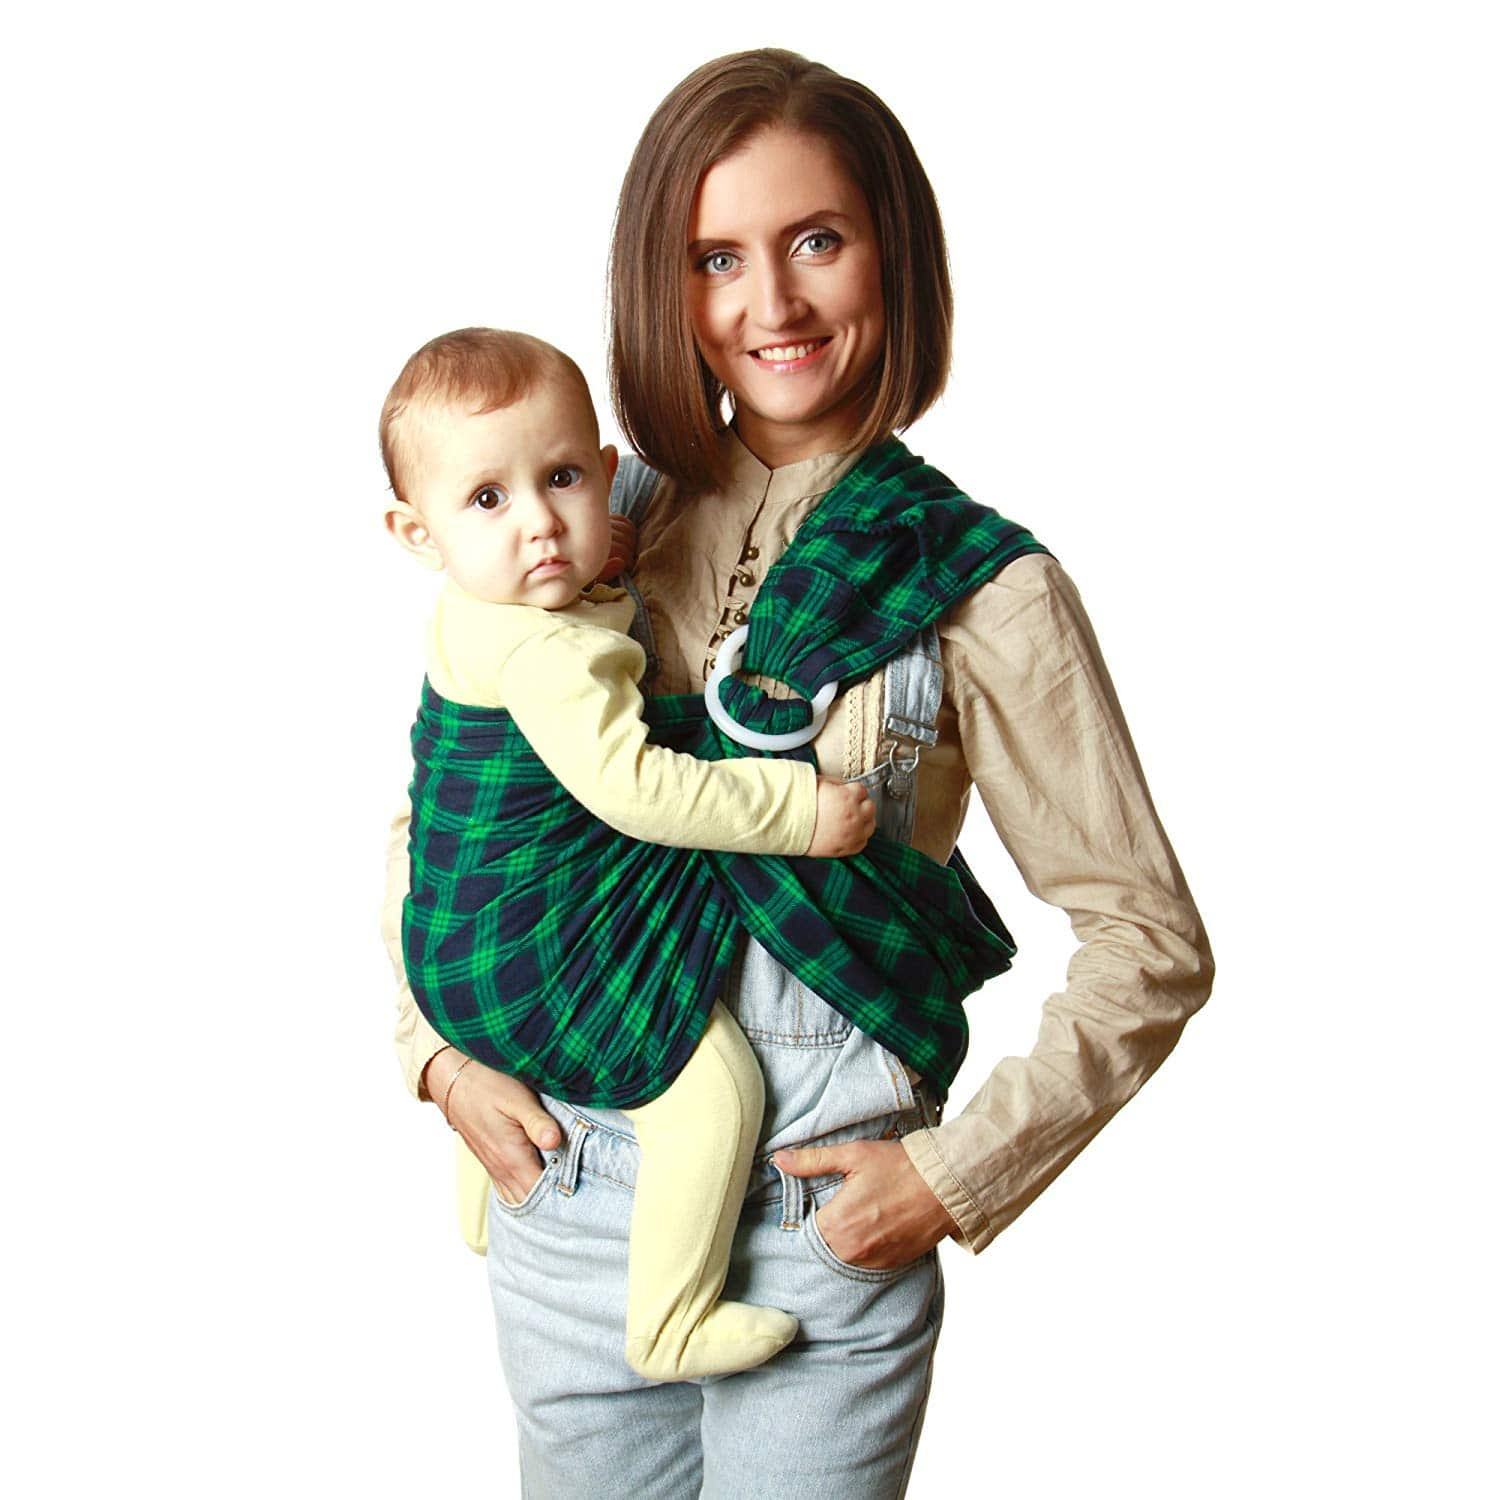 KiddyRay Ring Sling Baby Carrier Wrap  Cotton Natural Fabric  for Newborns Infants Toddlers  Baby Shower Gift  Breastfeeding Nursing Cover  Green  One Size Fits All